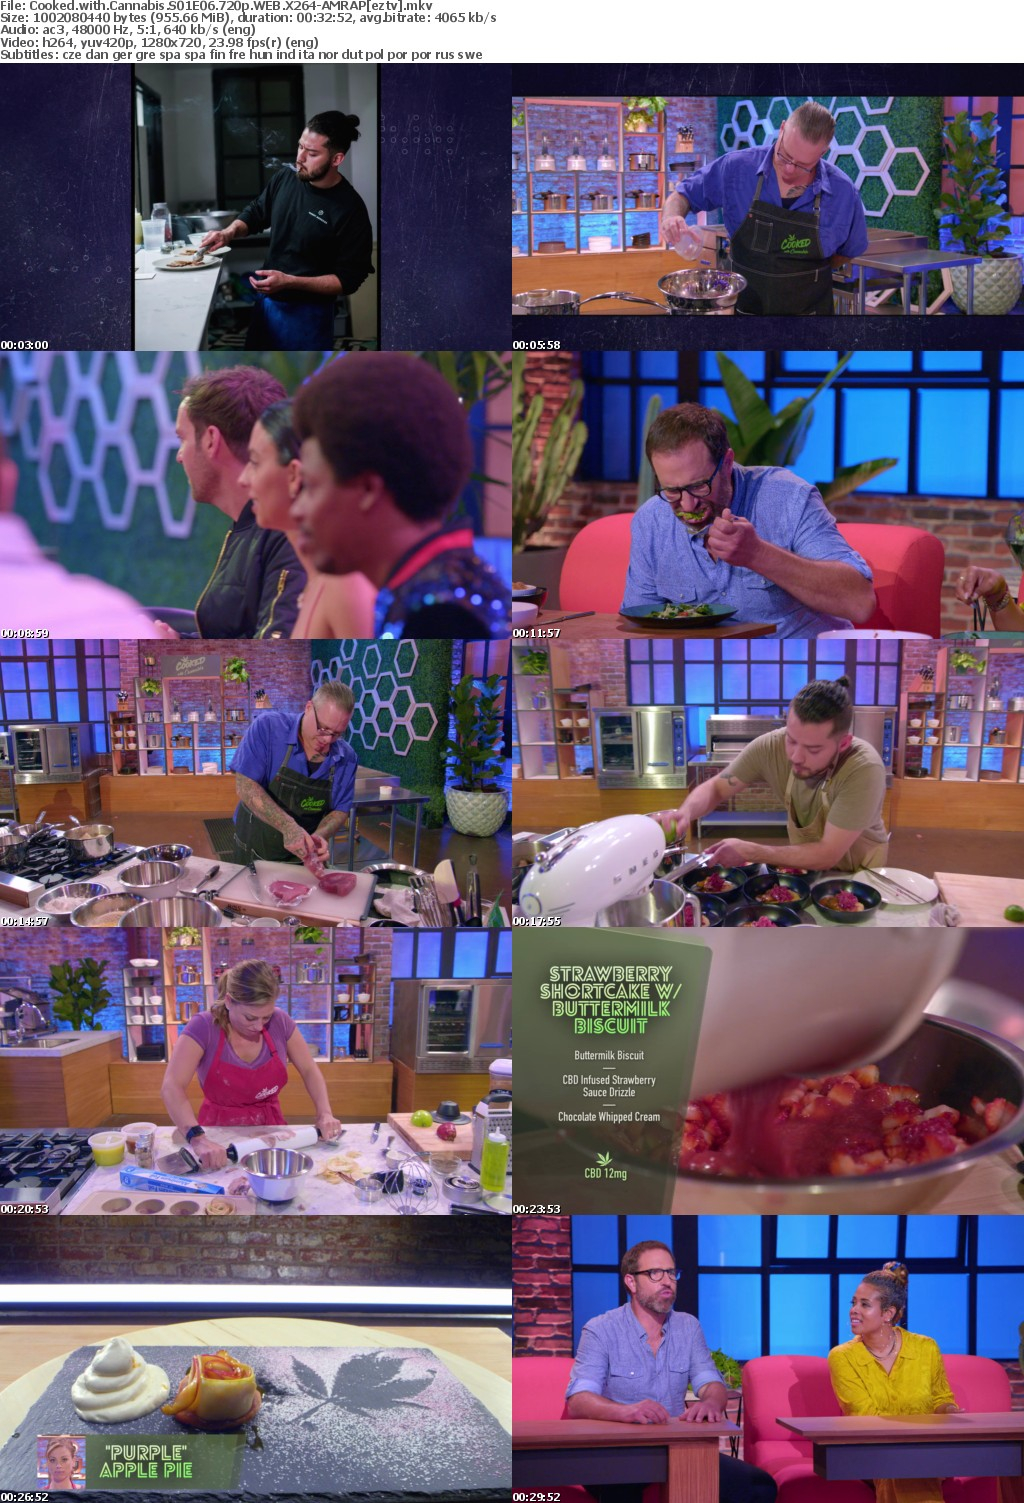 Cooked with Cannabis S01E06 720p WEB X264-AMRAP